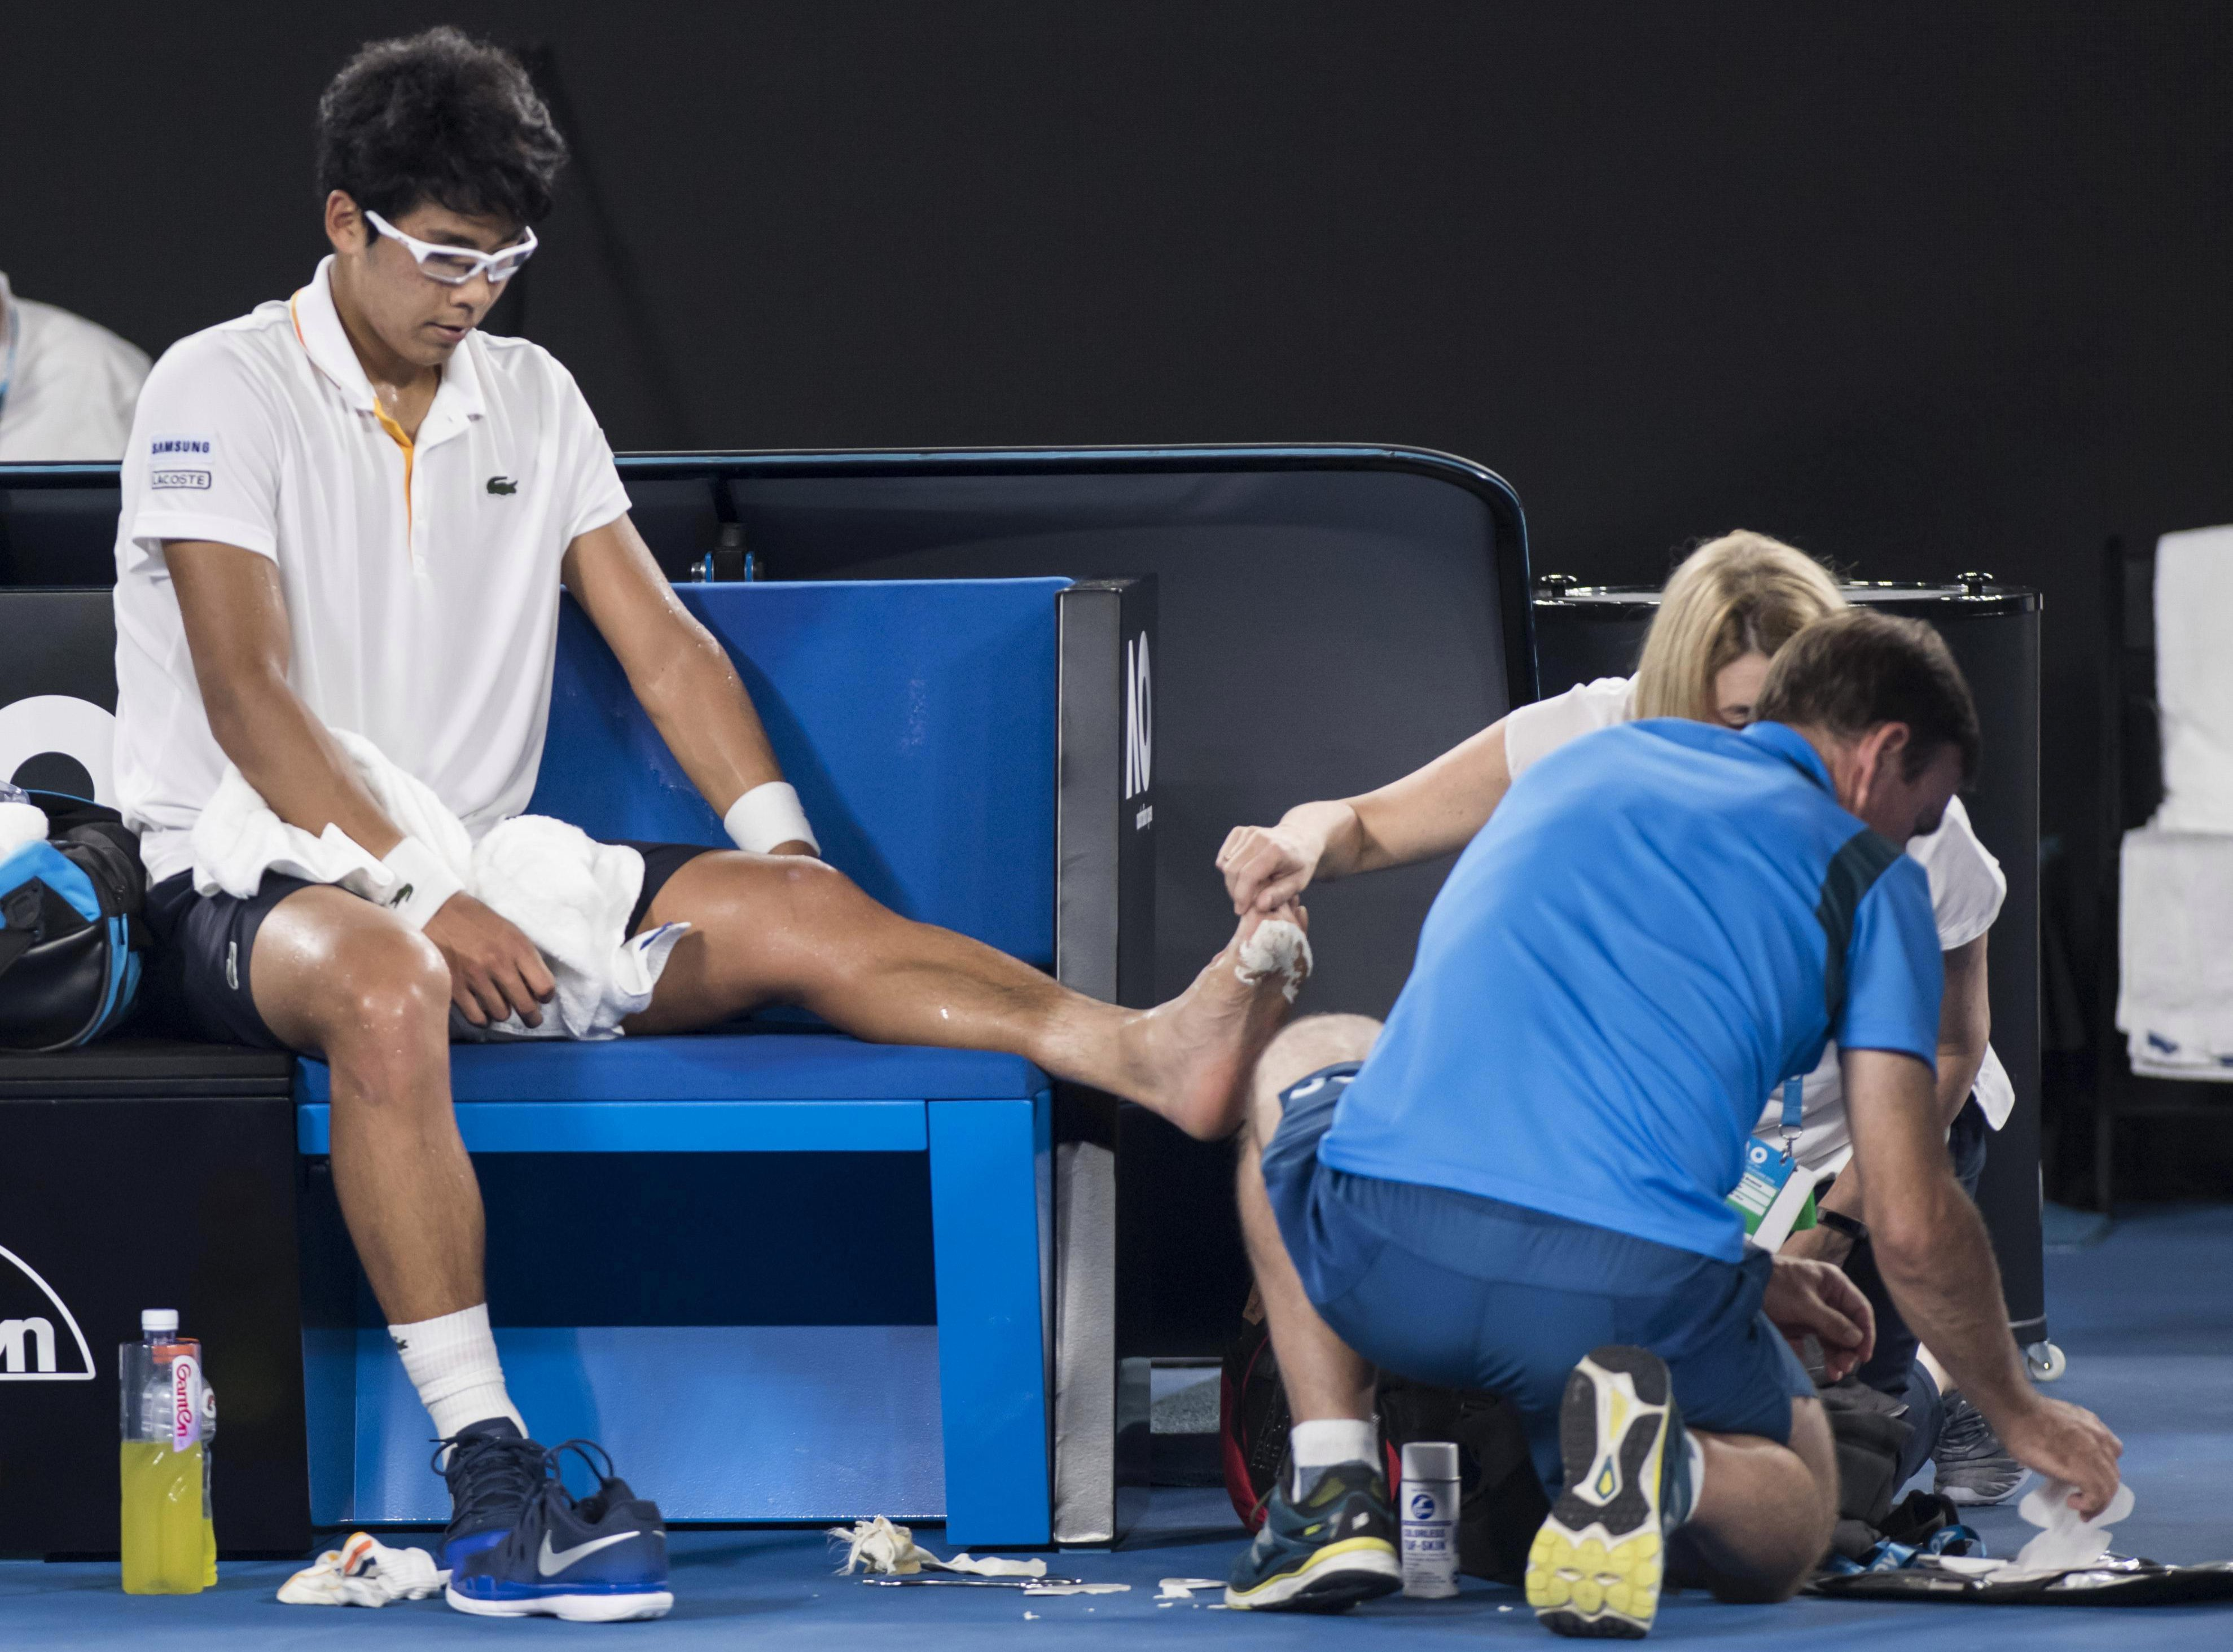 Hyeon Chung treated by medical staff for huge blister at Australian Open